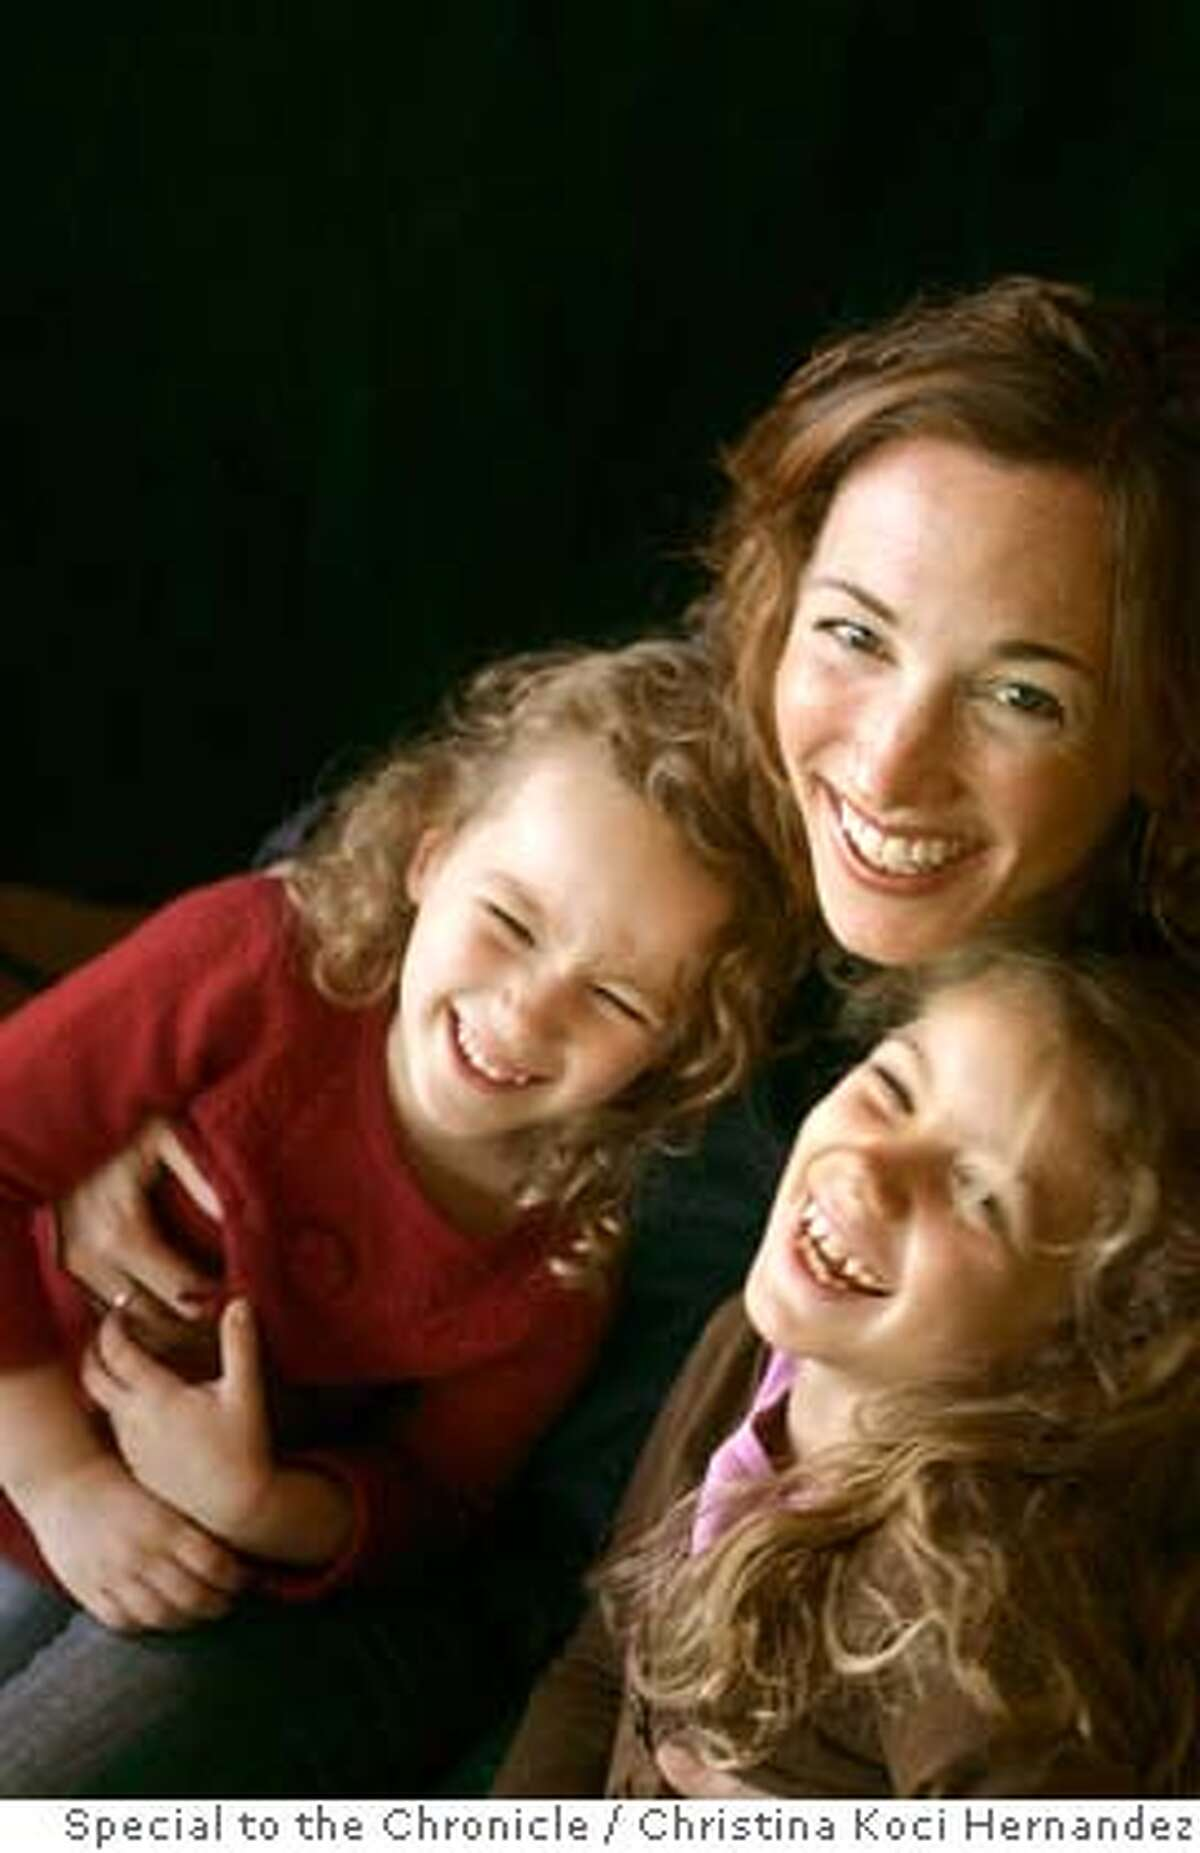 Christine Carter McLaughlin, photographed with her two daughters,(R) Fiona,6, and (L)Amalia,4, in her Piedmont home. She is a teacher of optimism and head of the Center for Greater Good at Berkeley Ran on: 12-30-2007 Fiona McLauglin, 6, strums the guitar in her Piedmont backyard.